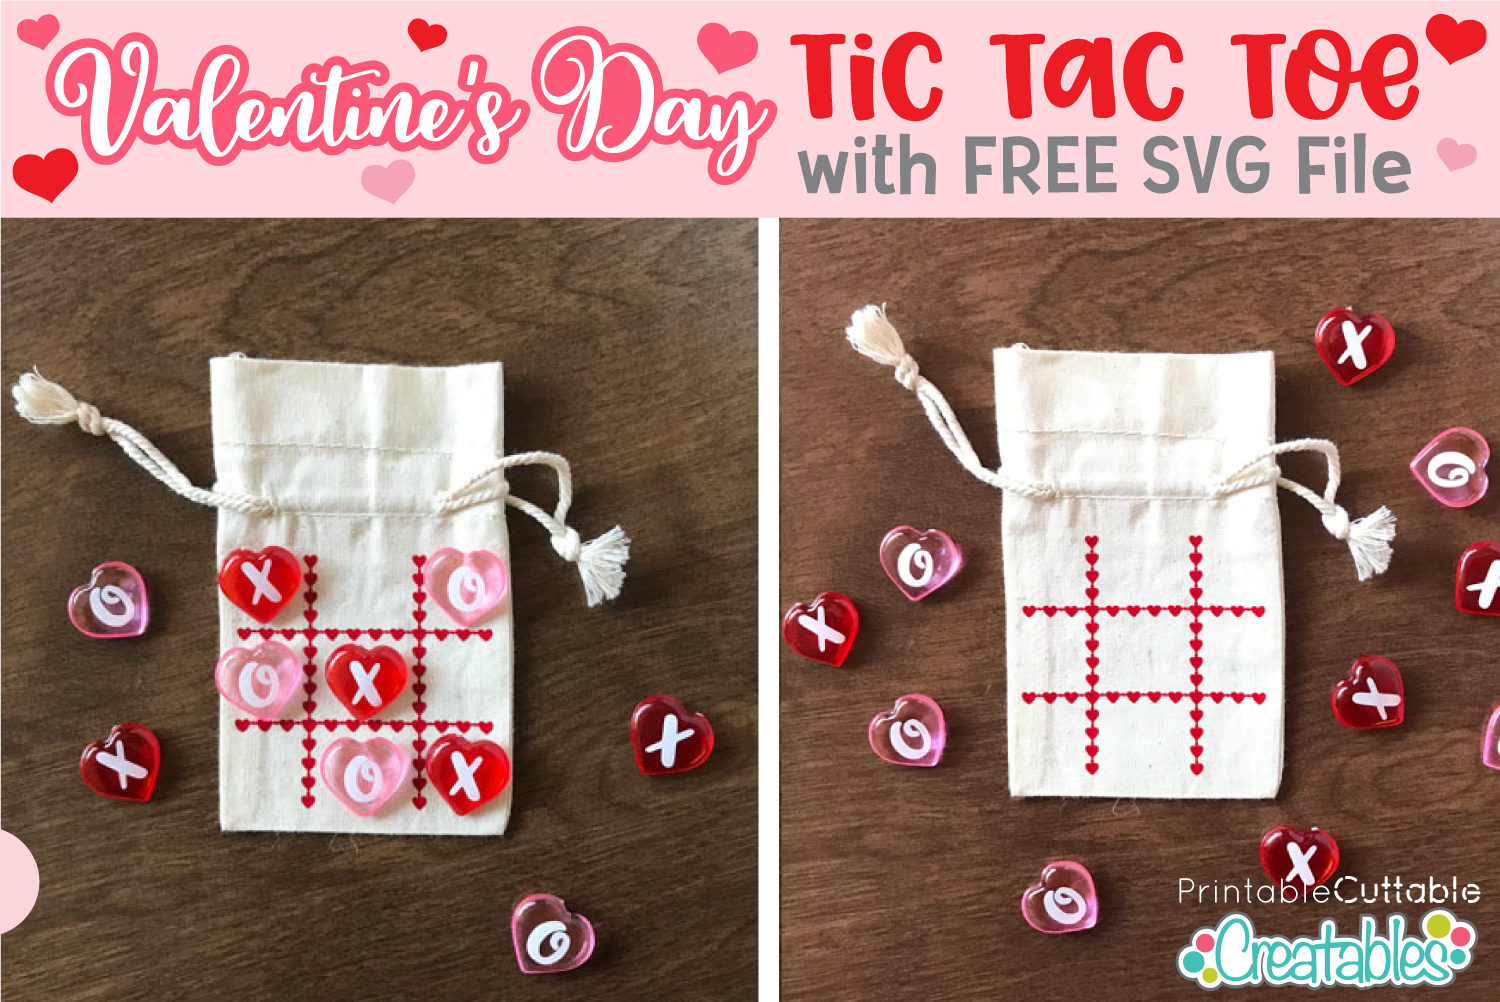 Valentine Tic Tac Toe Bag Free SVG file